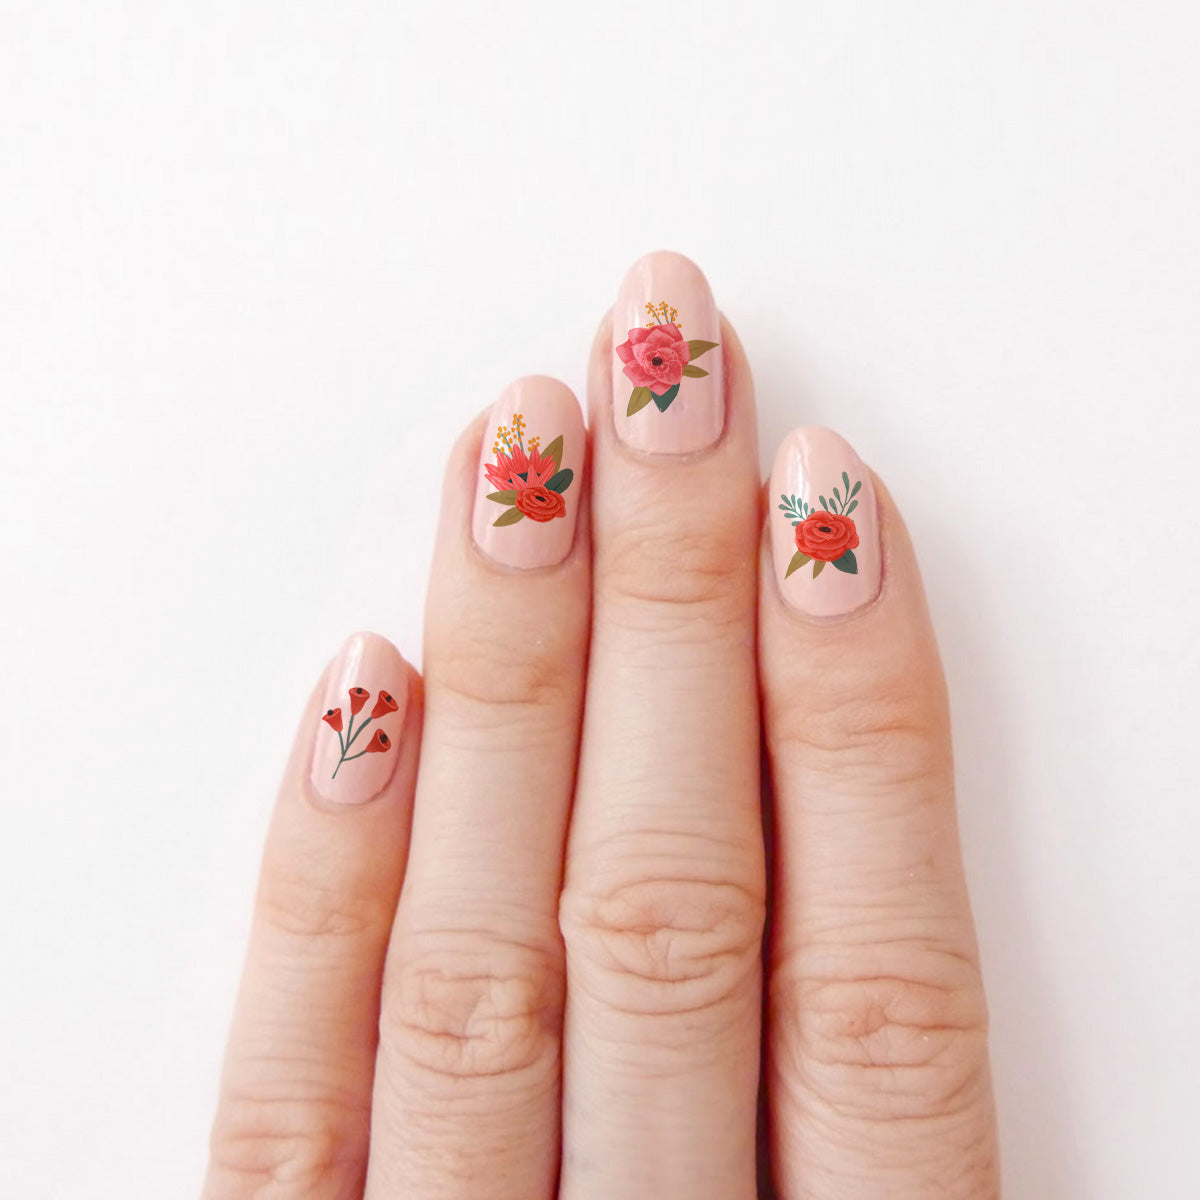 Floral Arrangements Nail Decals